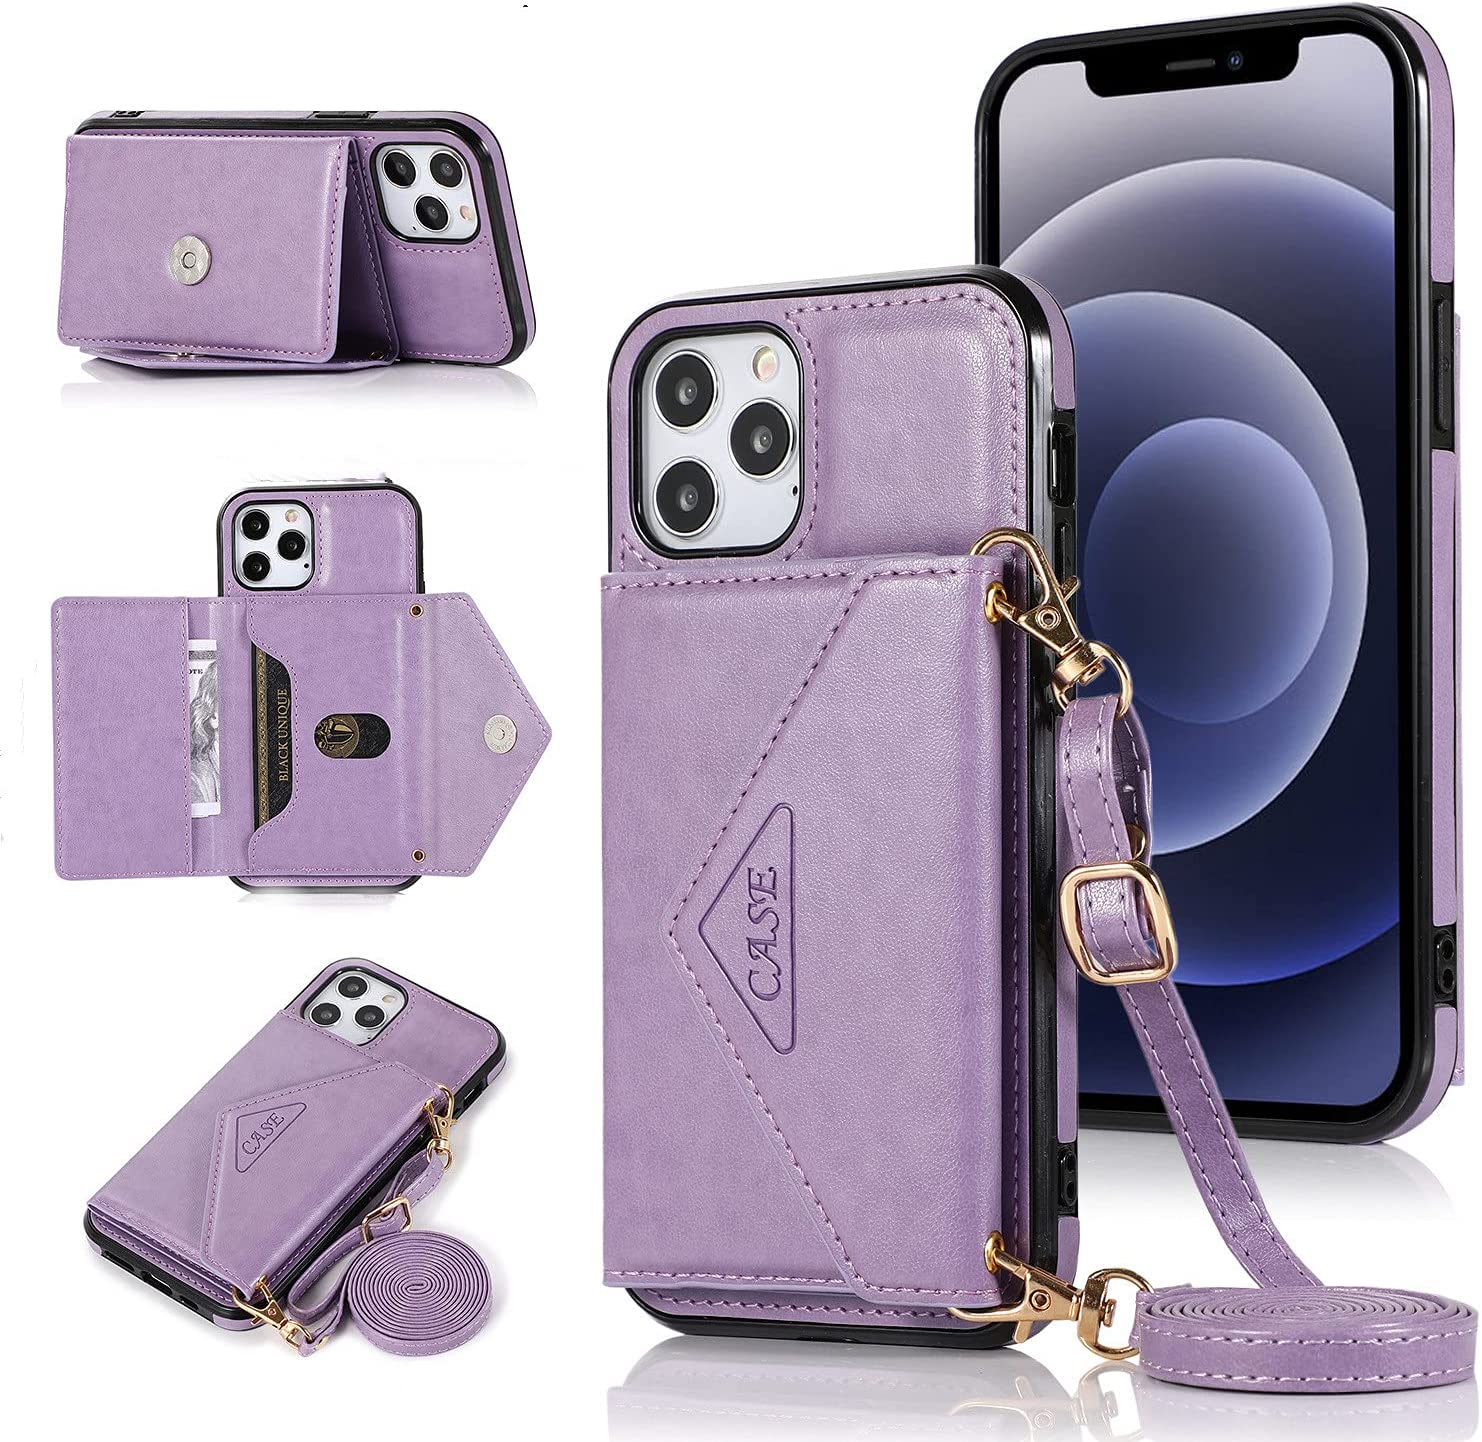 ISYSUII Crossbody Case for Samsung Galaxy A41 Wallet Case with Card Holder Kickstand Detachable Lanyard Strap Leather Shockproof Protective Flip Cover Magnetic Handbag Cover,Purple